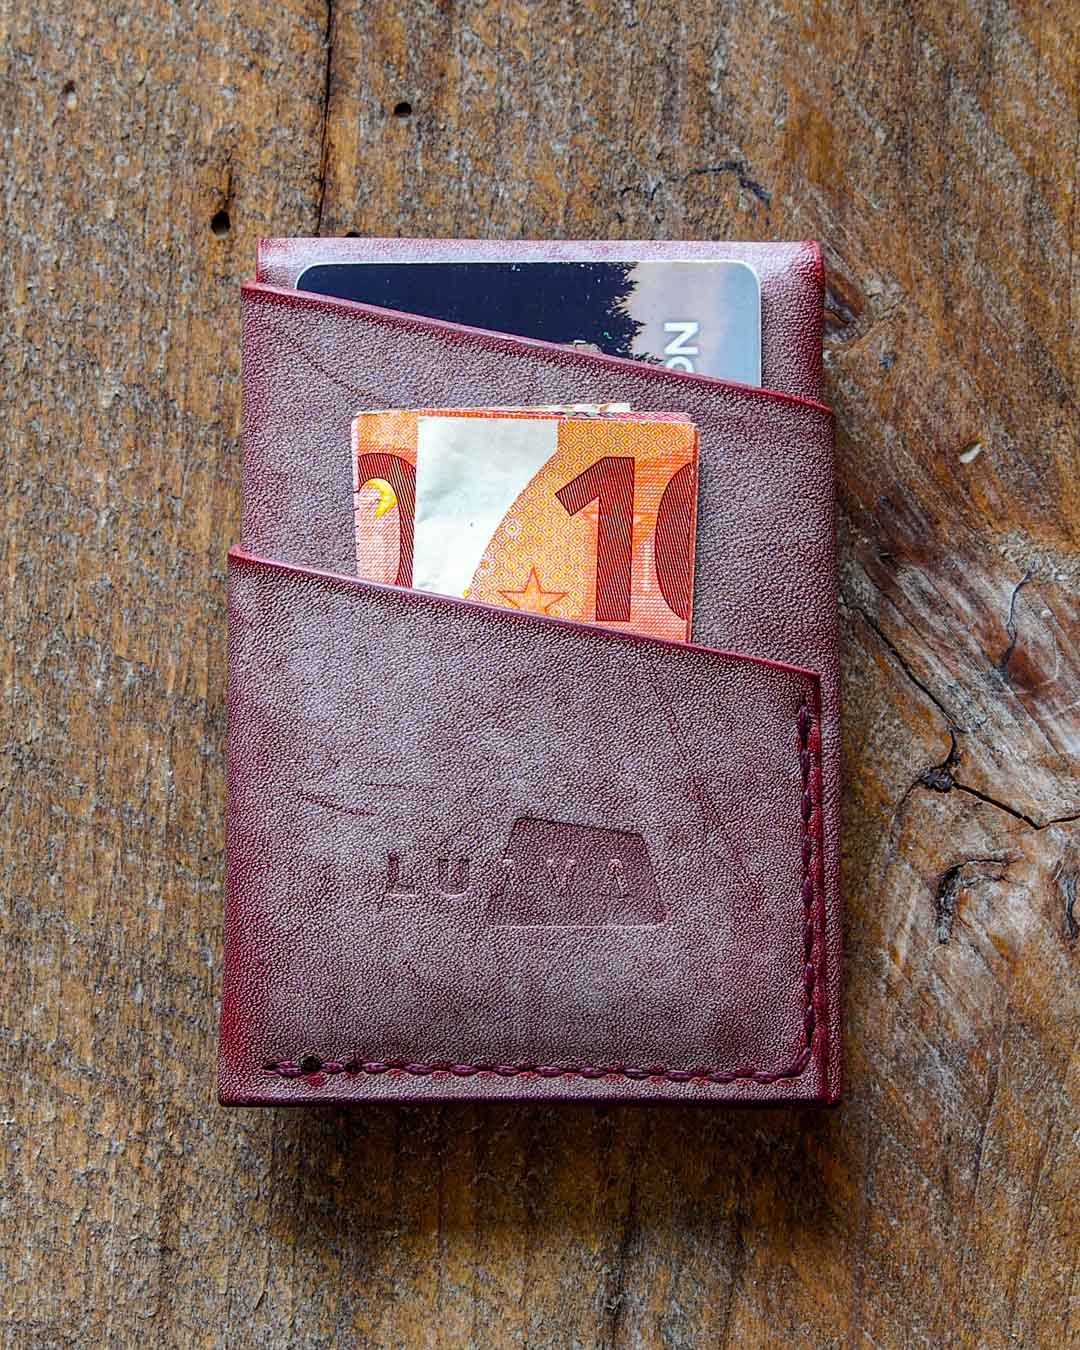 Luava handcrafted leather overfold wallet ghost burgundy conceria la bretagna cardholder card holder handmade in finland back closed in use